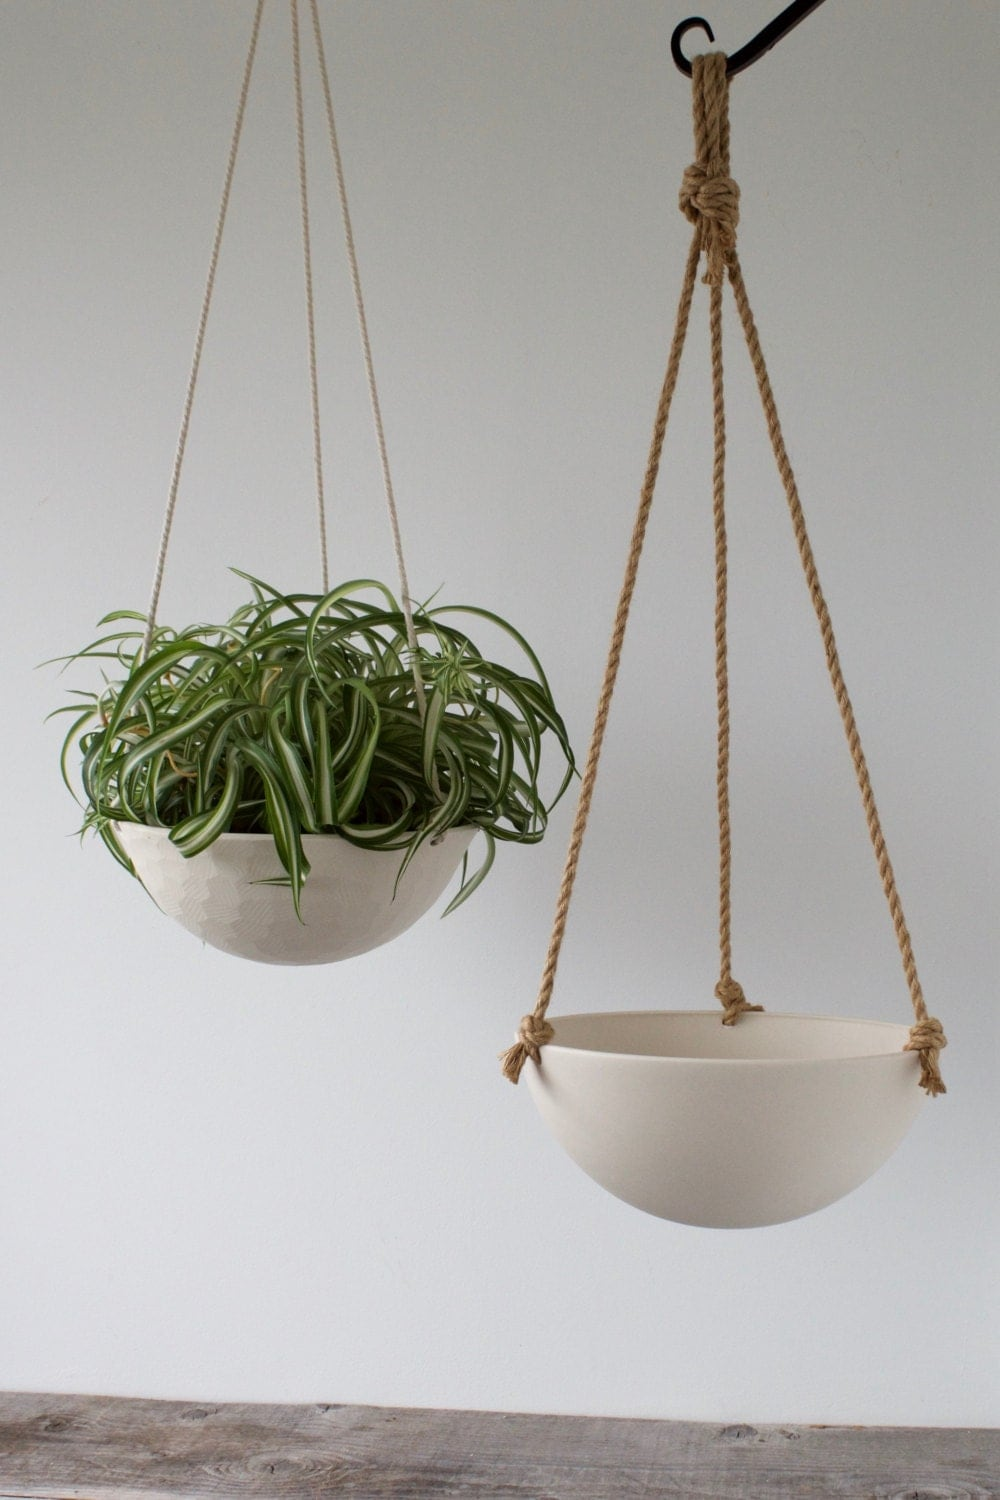 large hanging planter ceramic porcelain basket with jute or